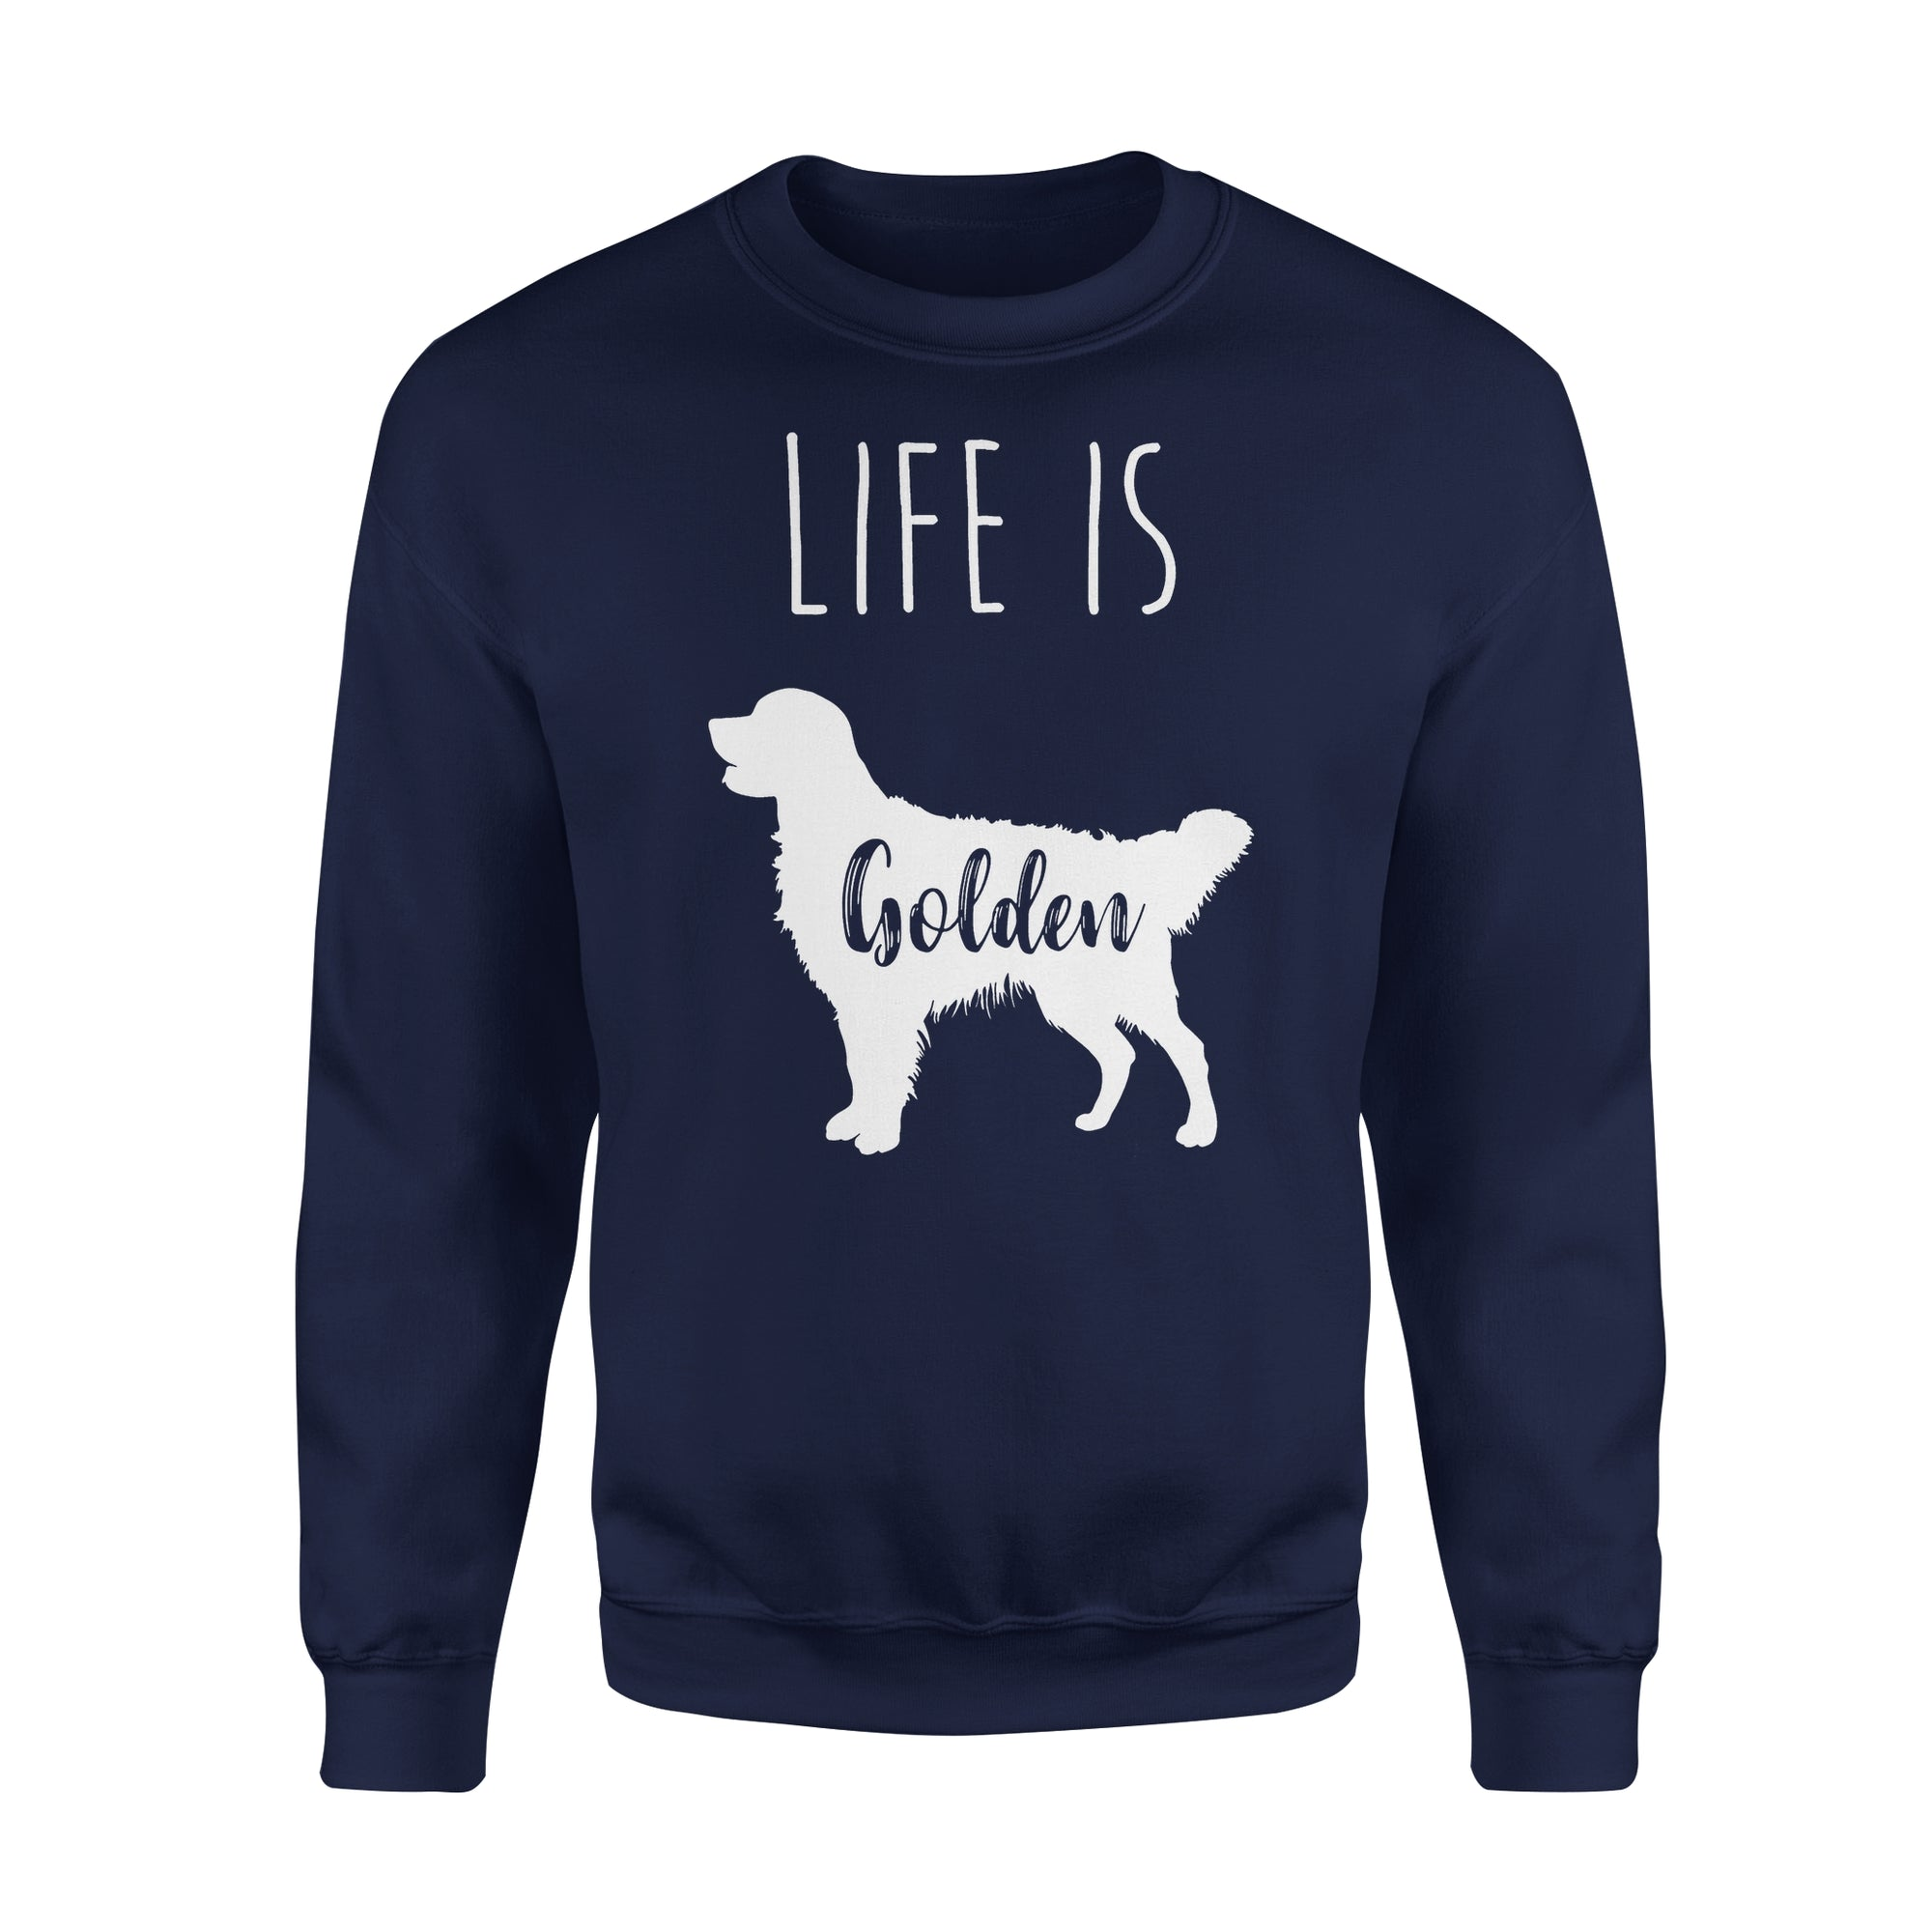 VIRA Premium Fleece Sweatshirt For Golden Retriever  Lovers